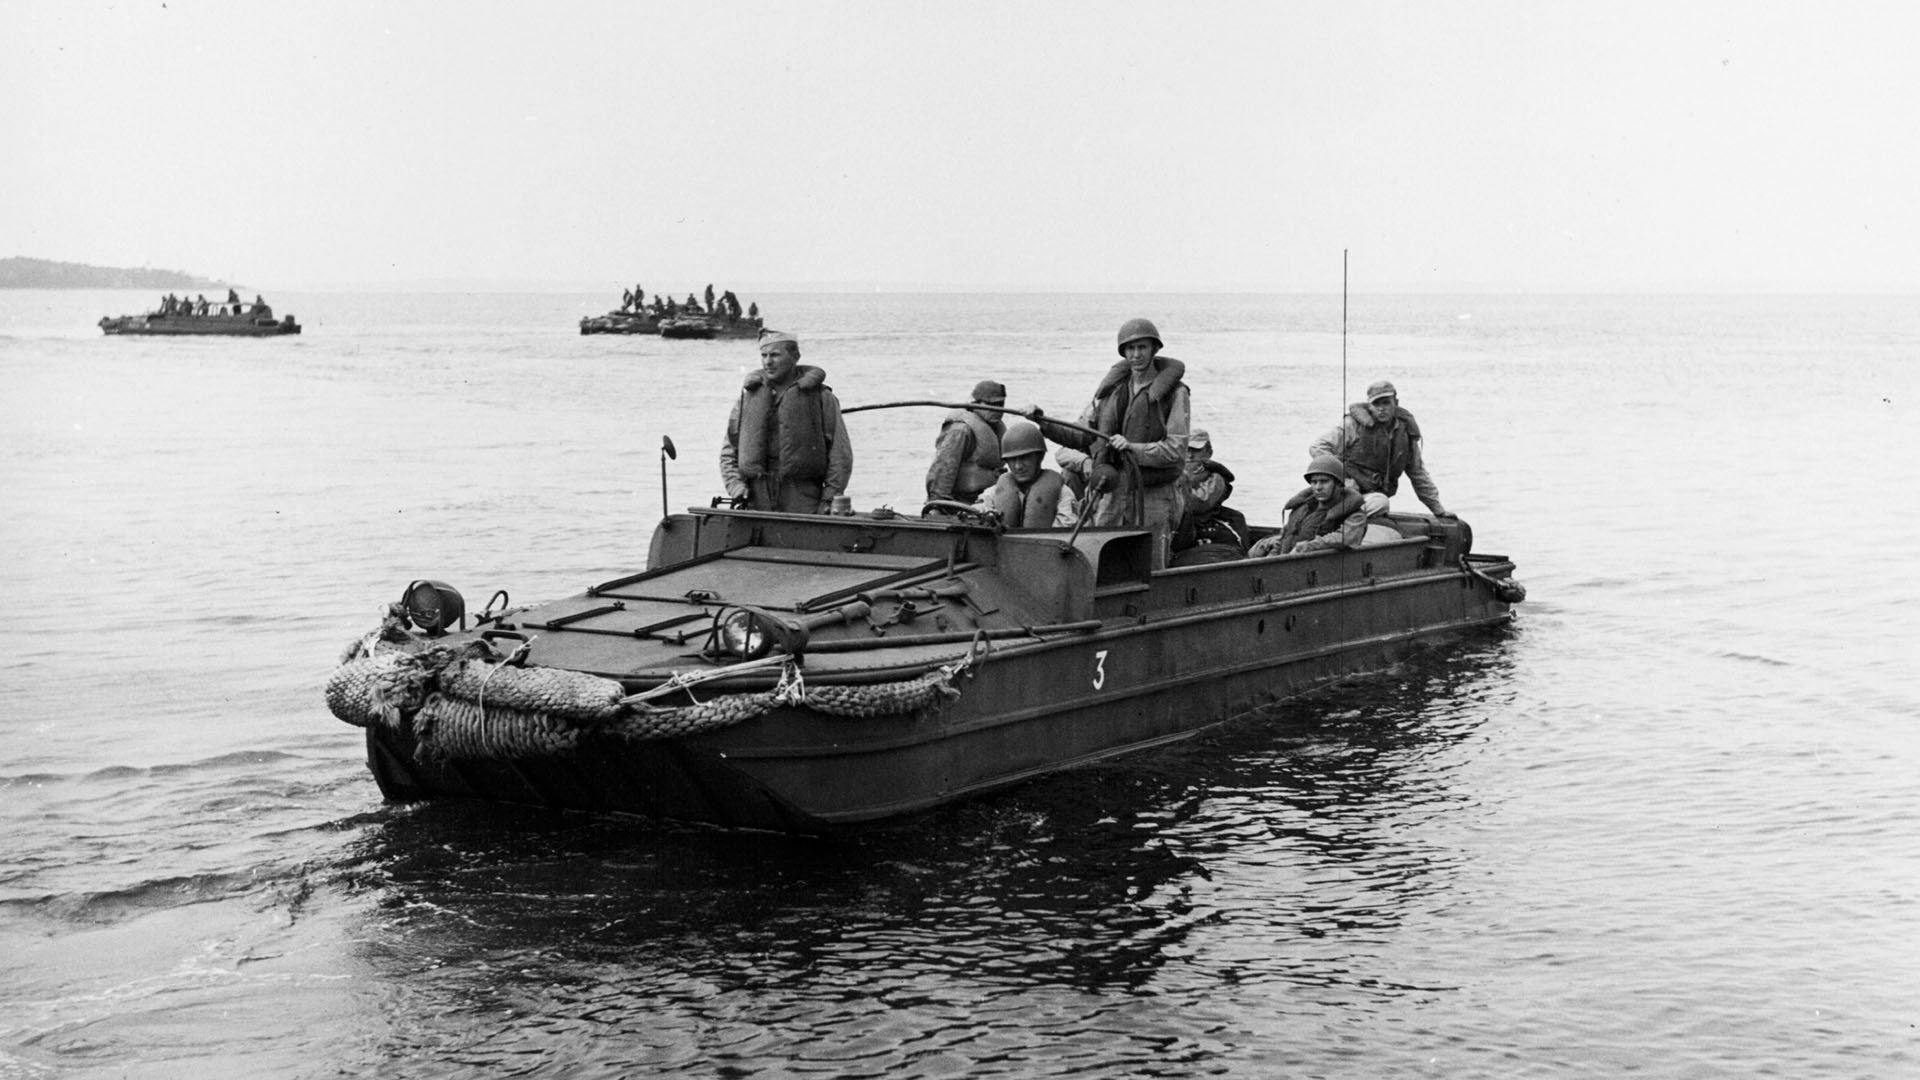 American amphibious 'duck' truck in the water.